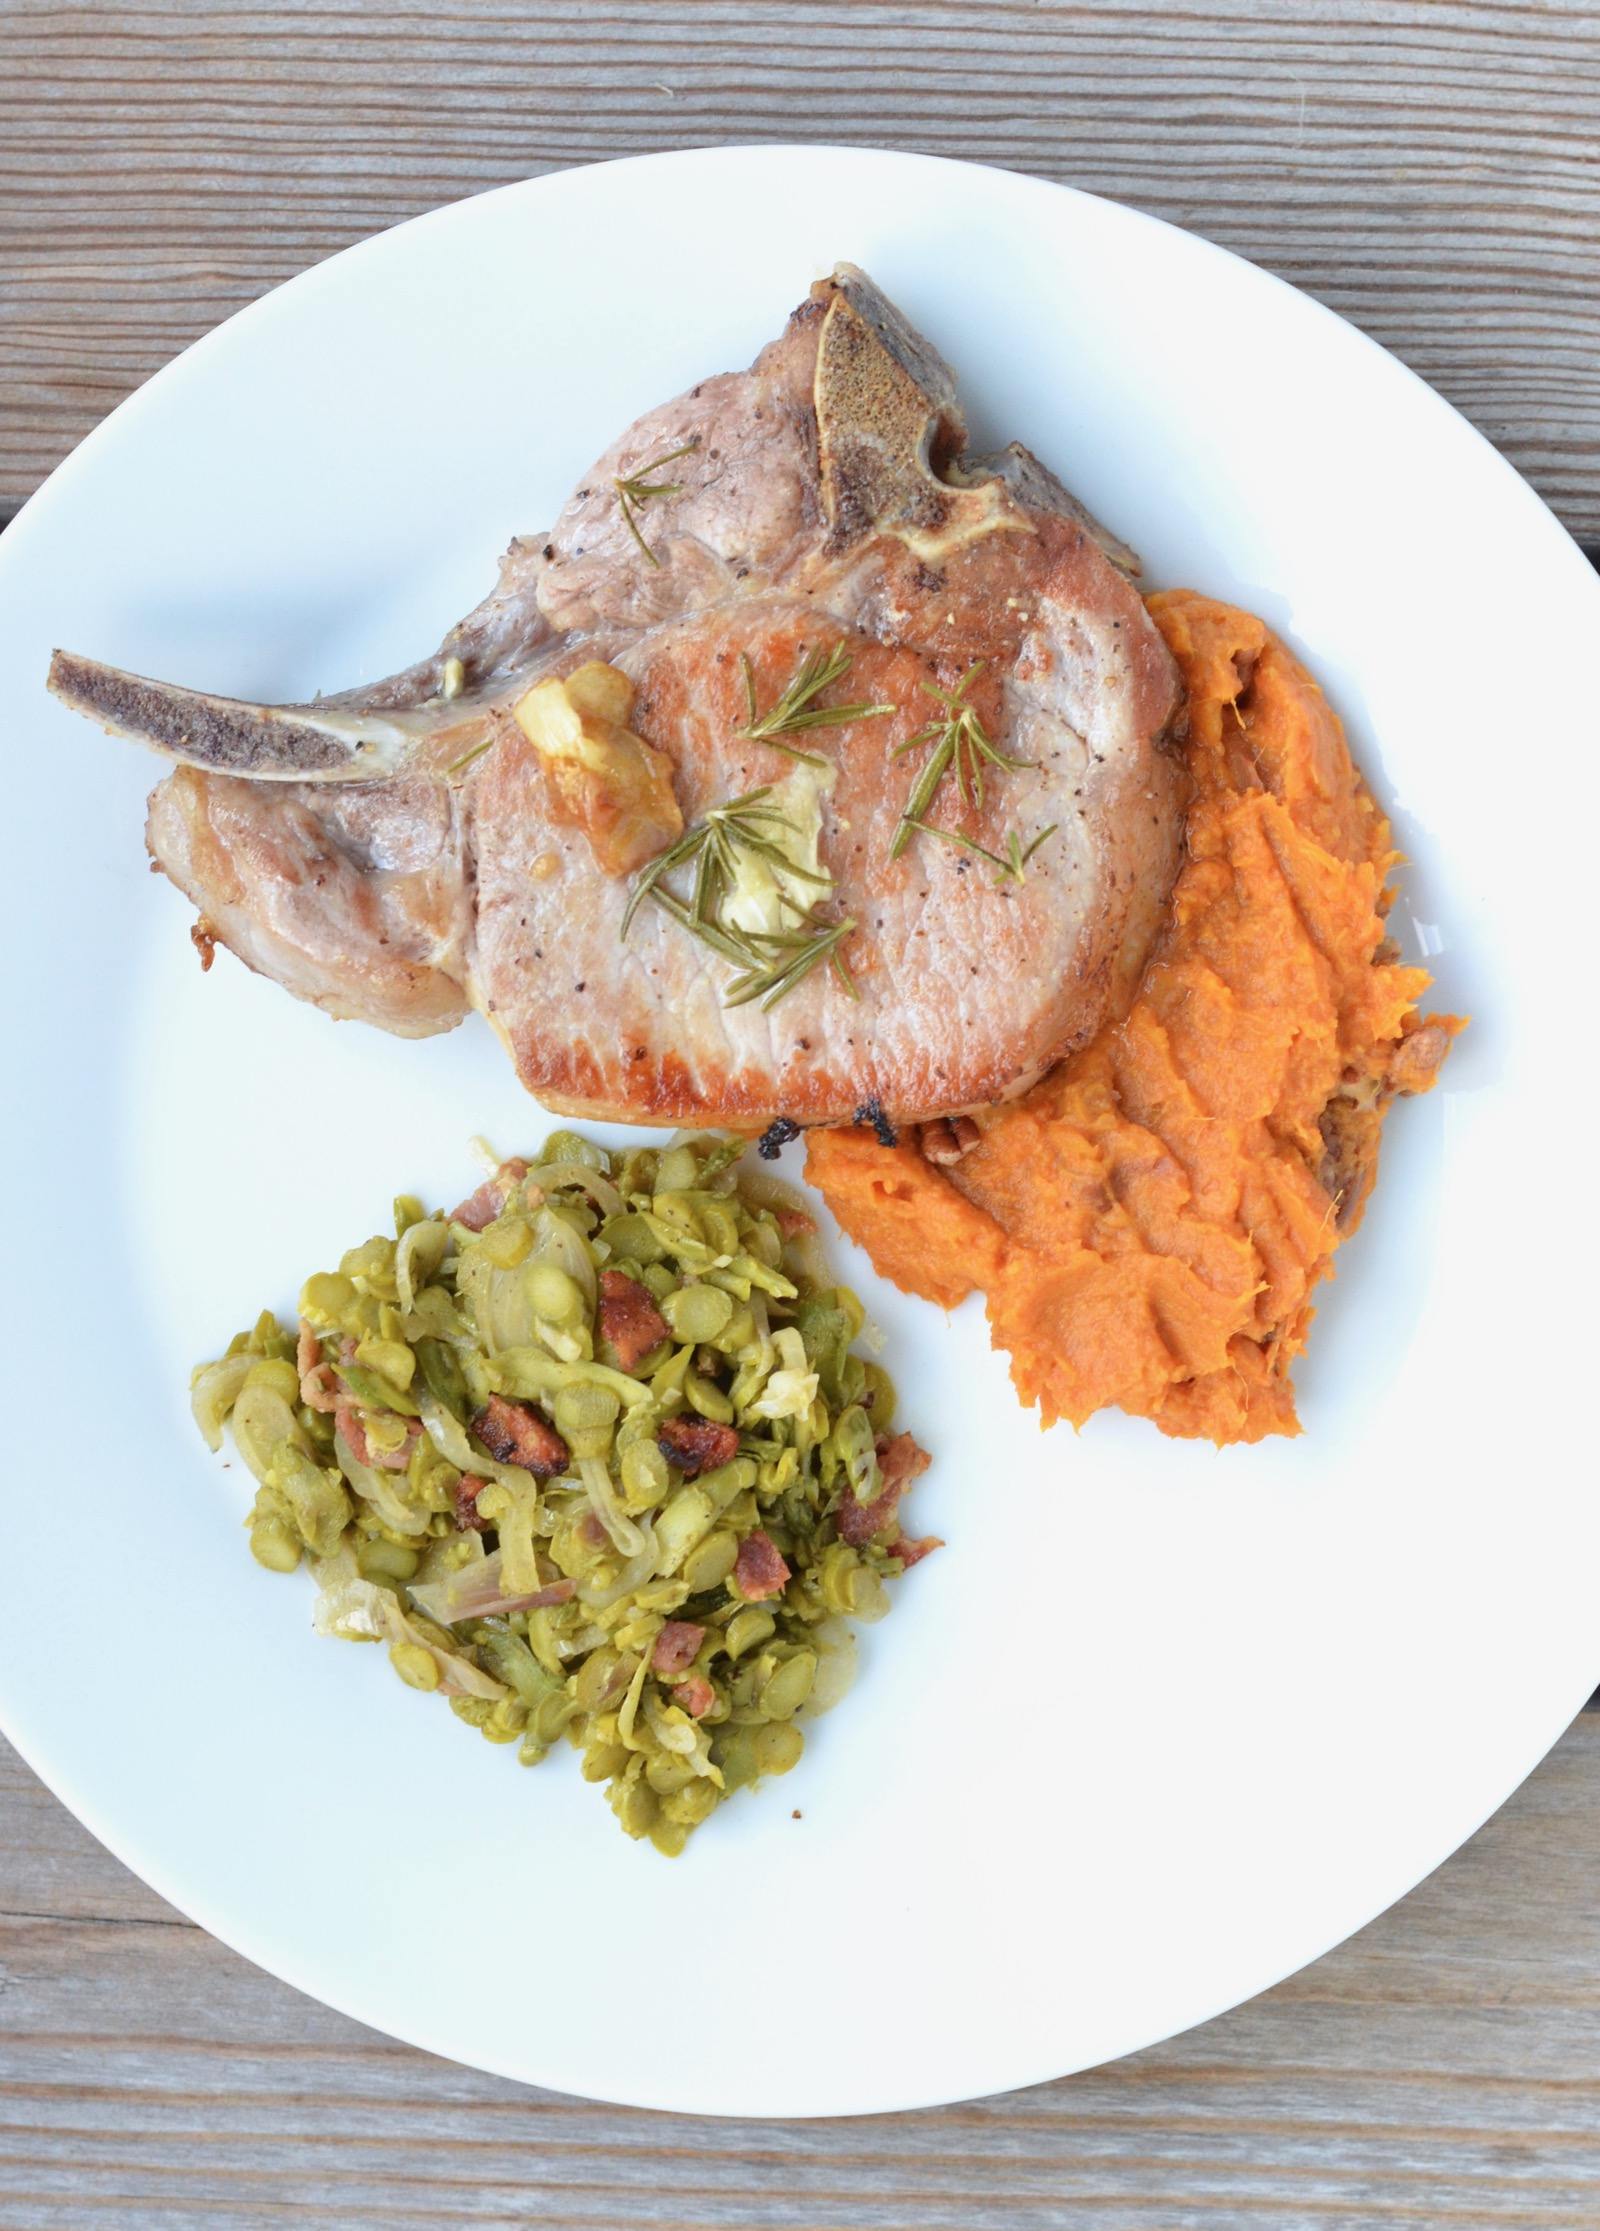 Rosemary & Roasted Garlic Pork Chop Recipe, asparagus, and mashed sweet potatoes